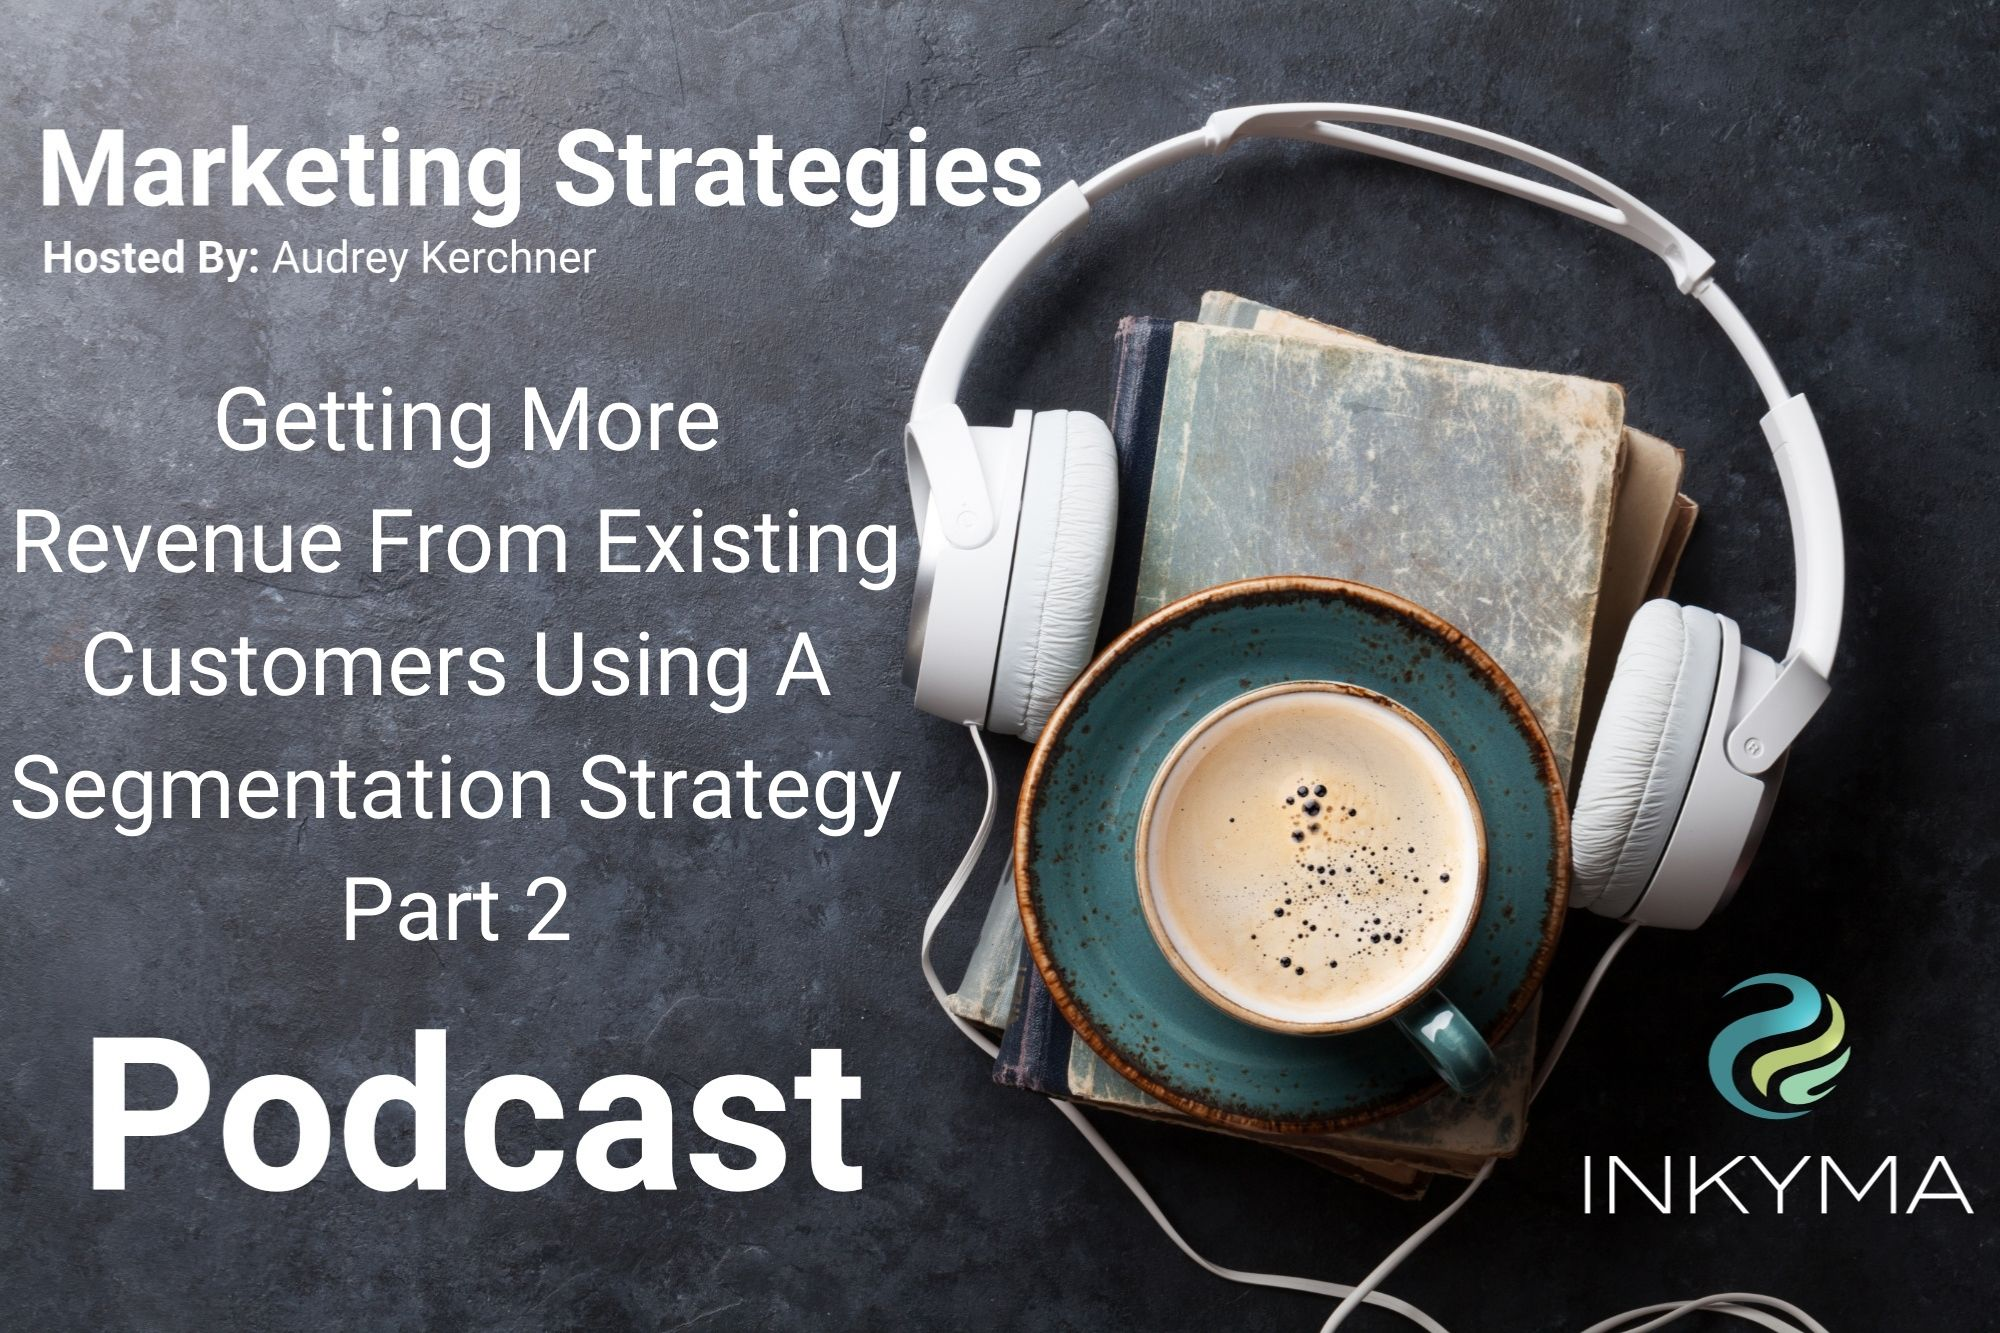 Getting More Revenue From Existing Customers Using A Segmentation Strategy (Part 2)